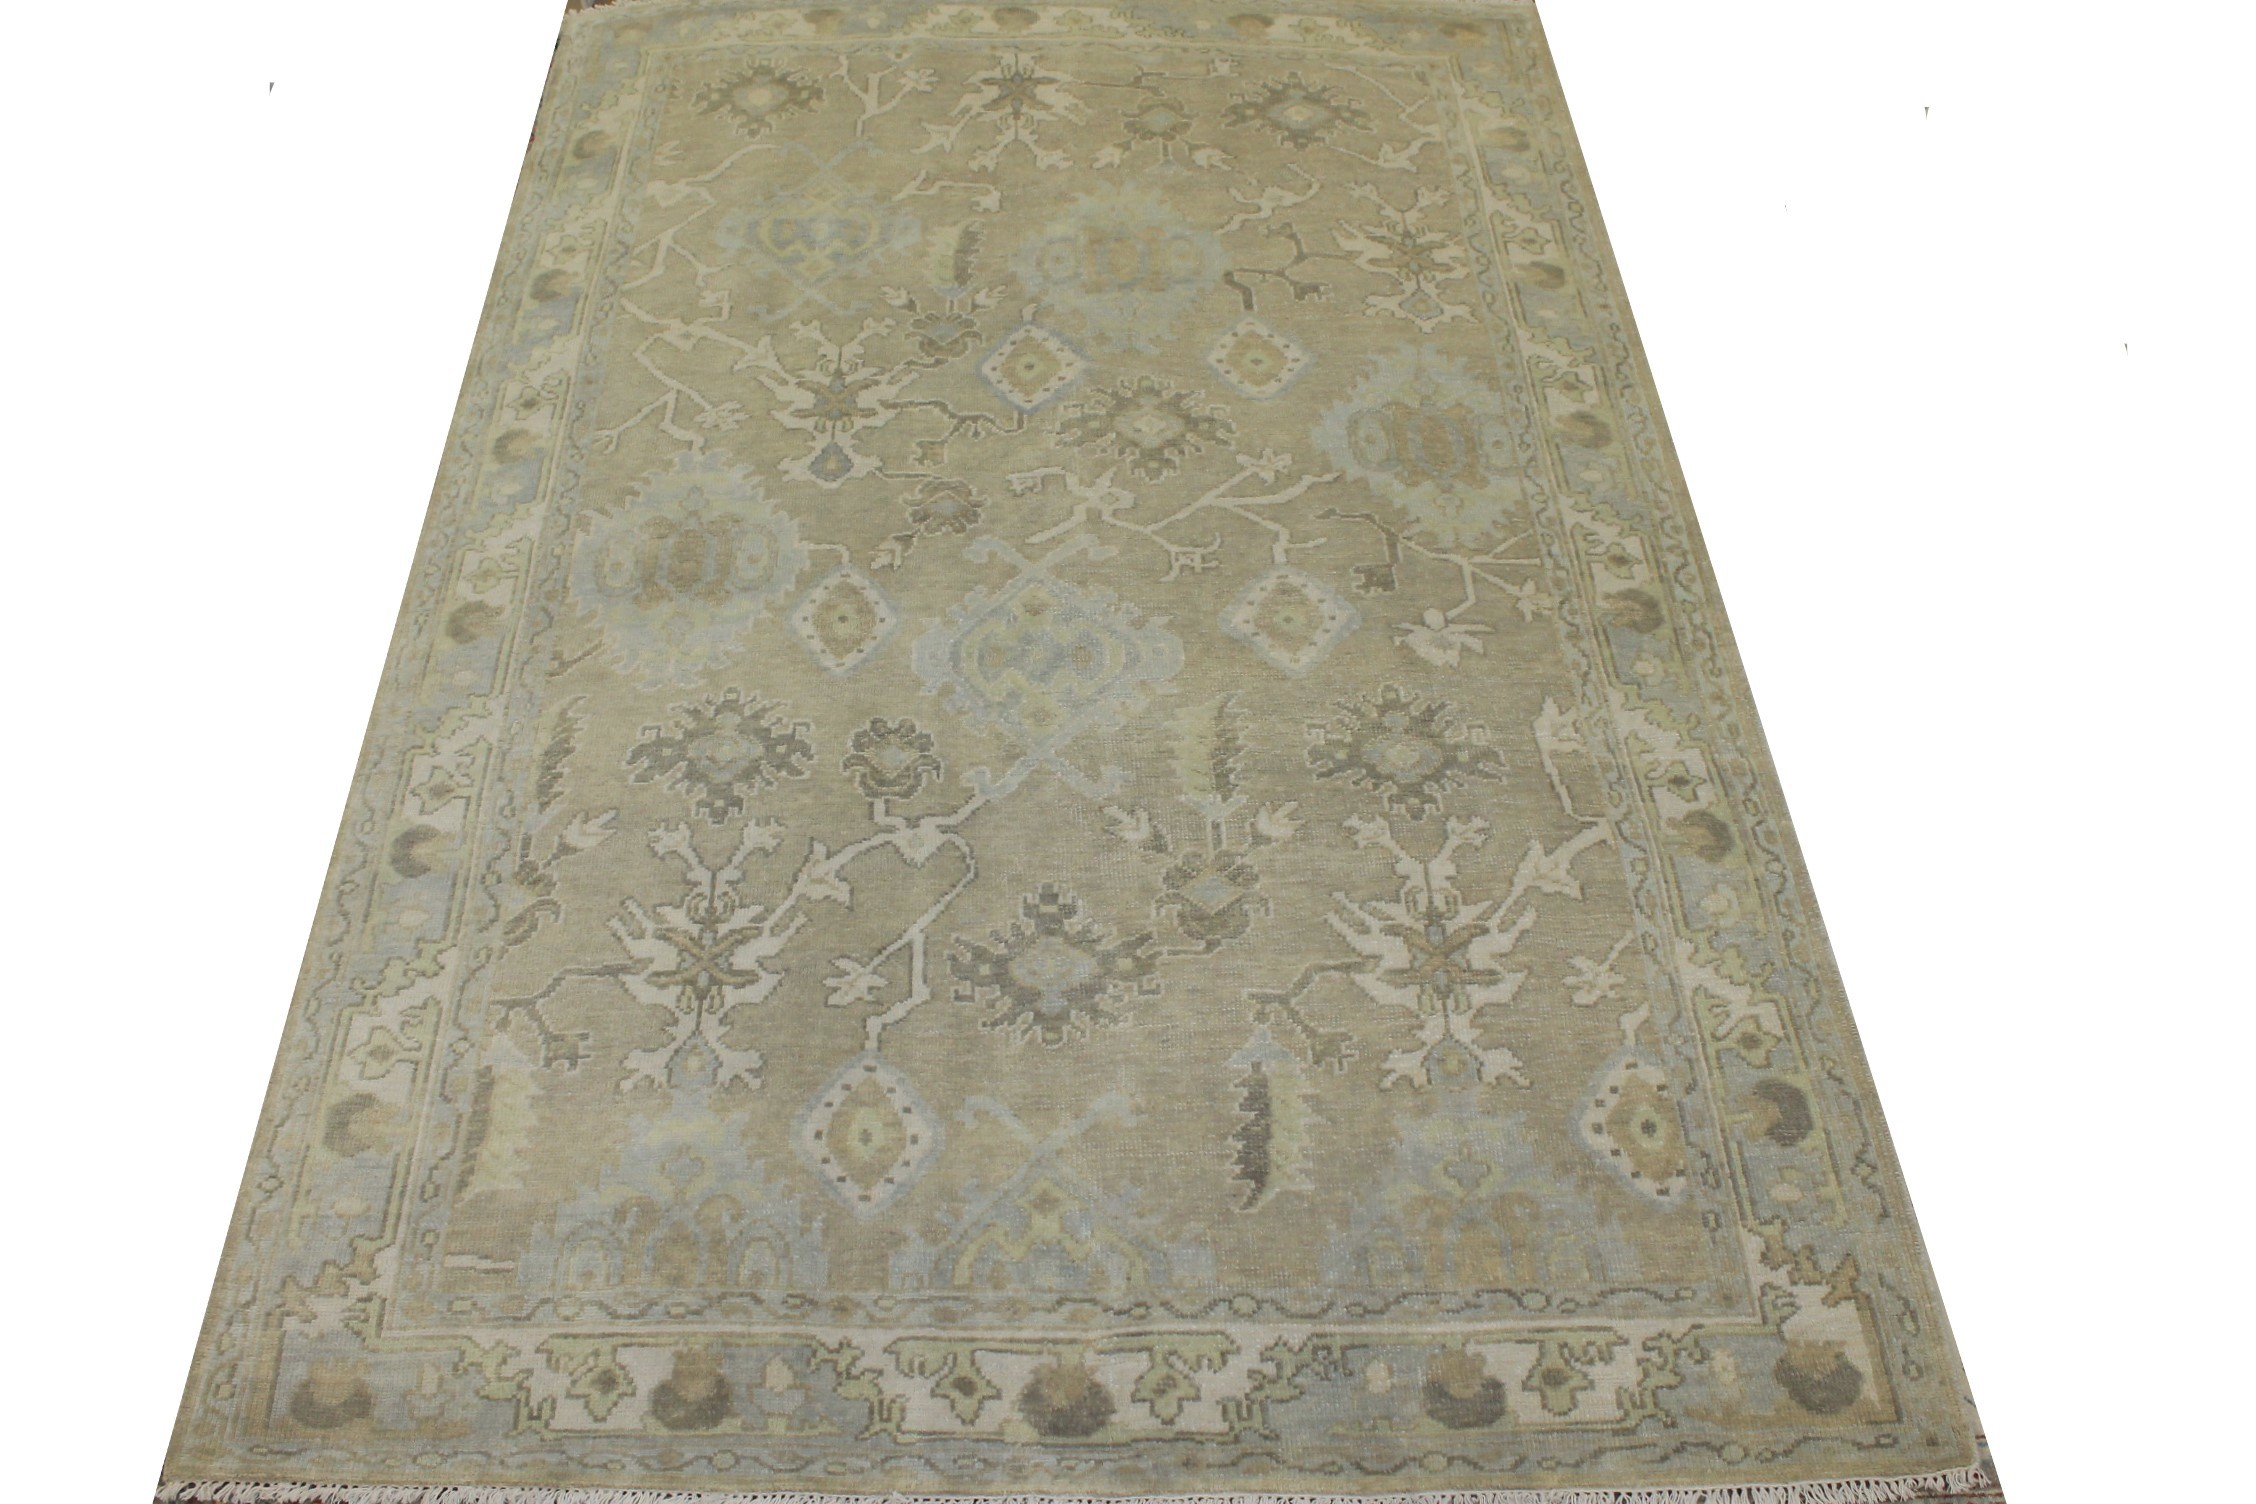 6x9 Oushak Hand Knotted Wool Area Rug - MR025561